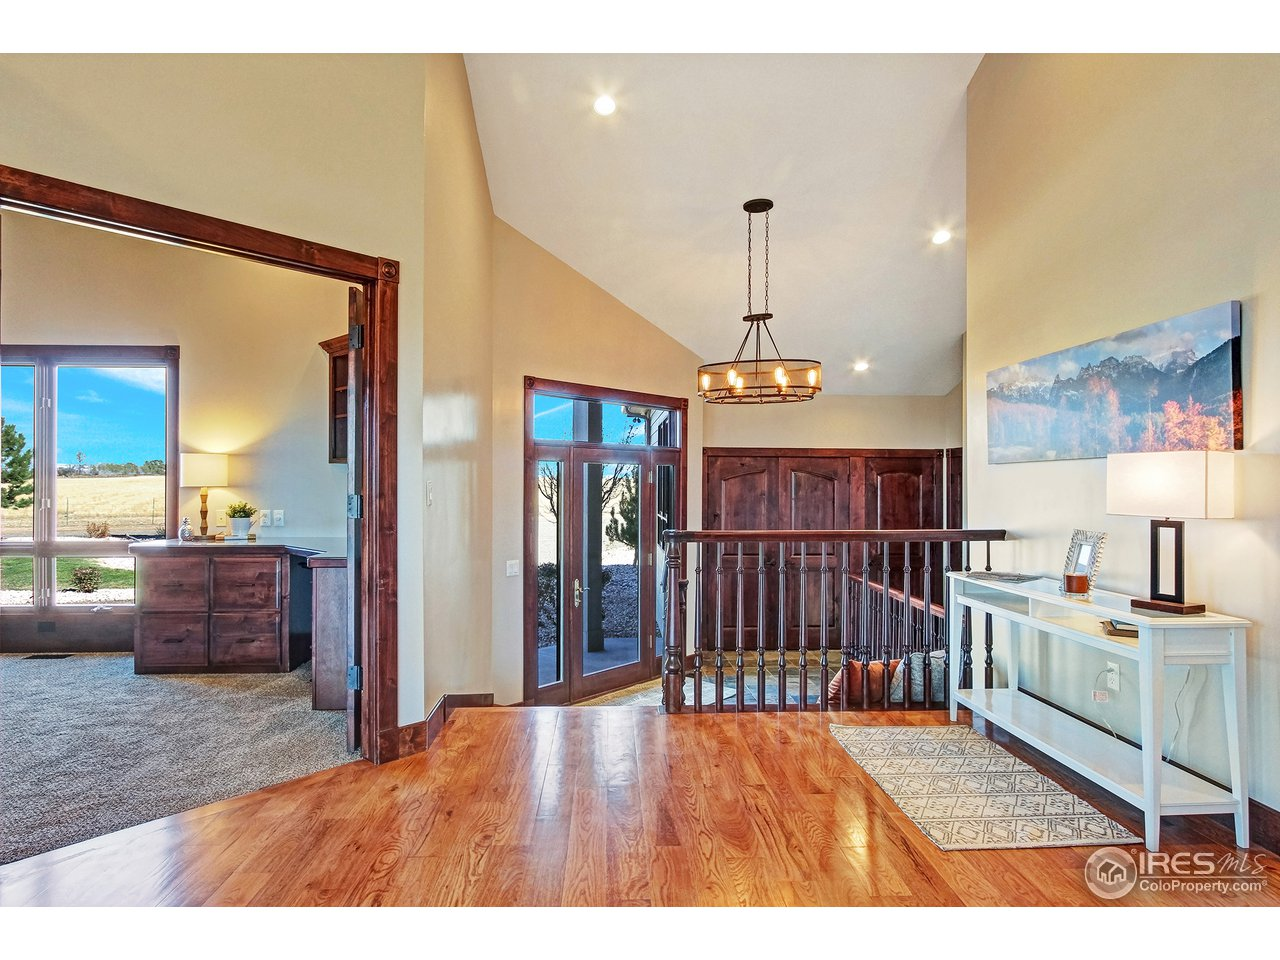 Tall Vaulted Ceilings